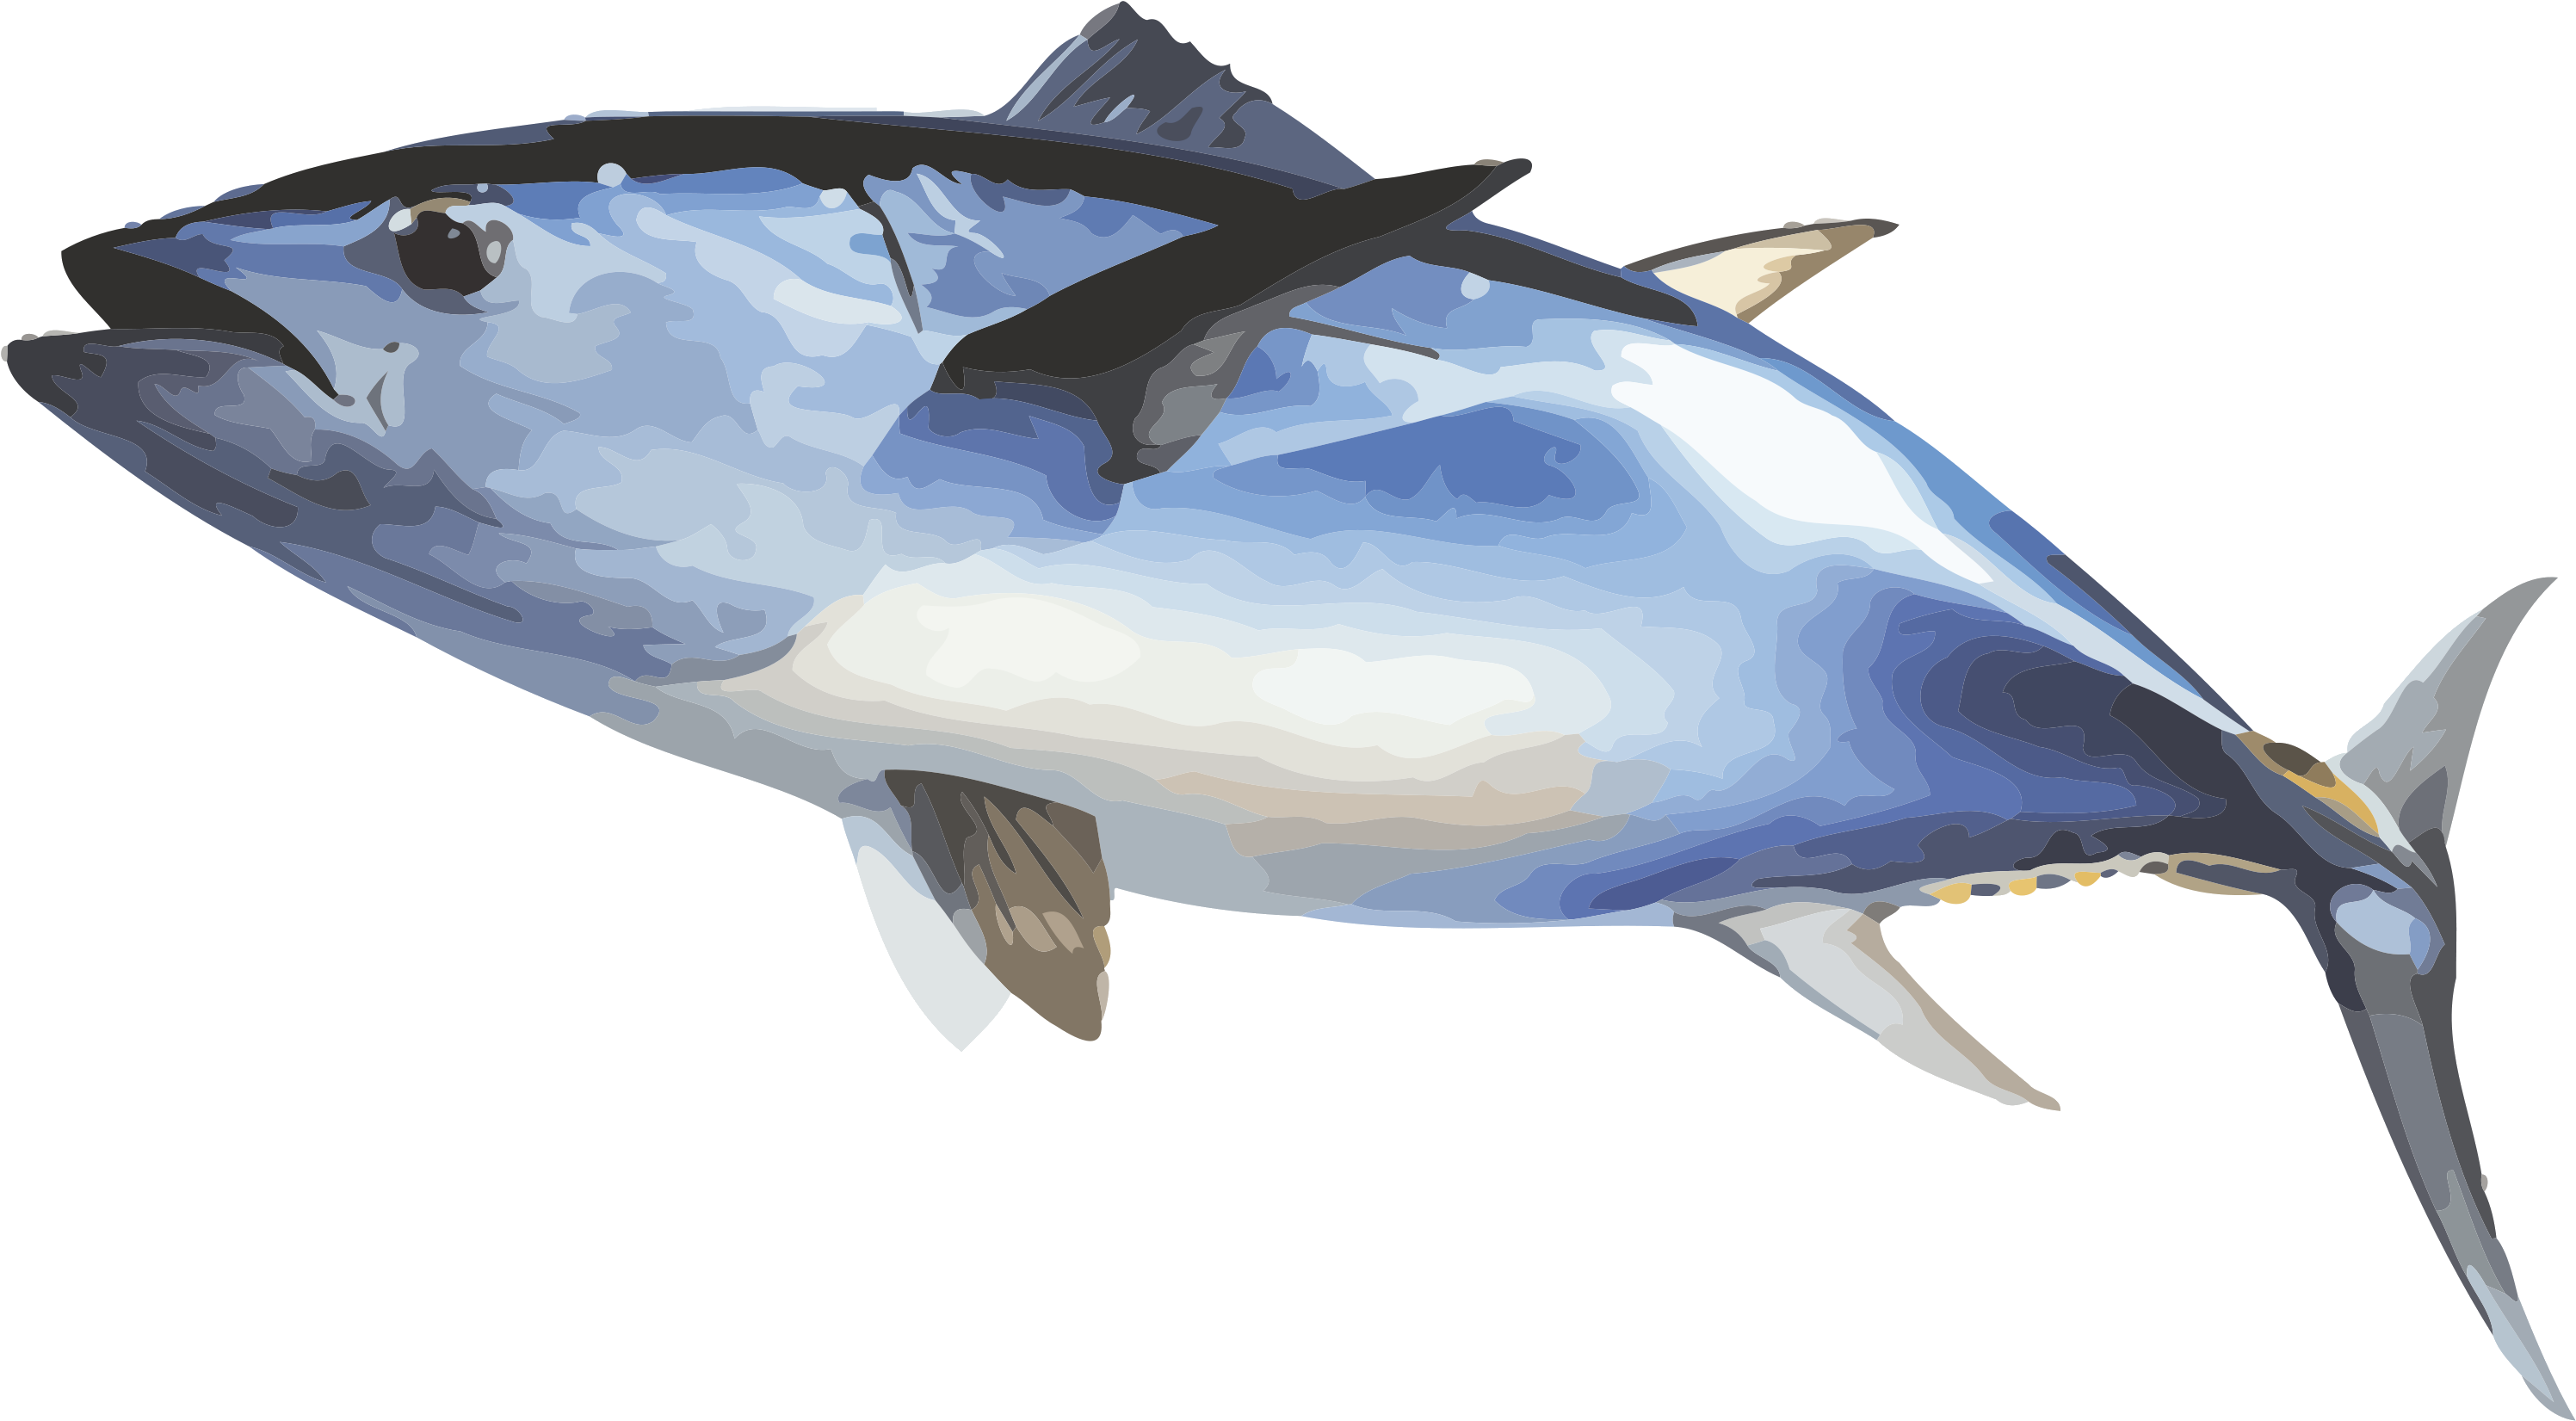 Fish Ecosia Inewconcom Your Transparent Background Tuna Png.